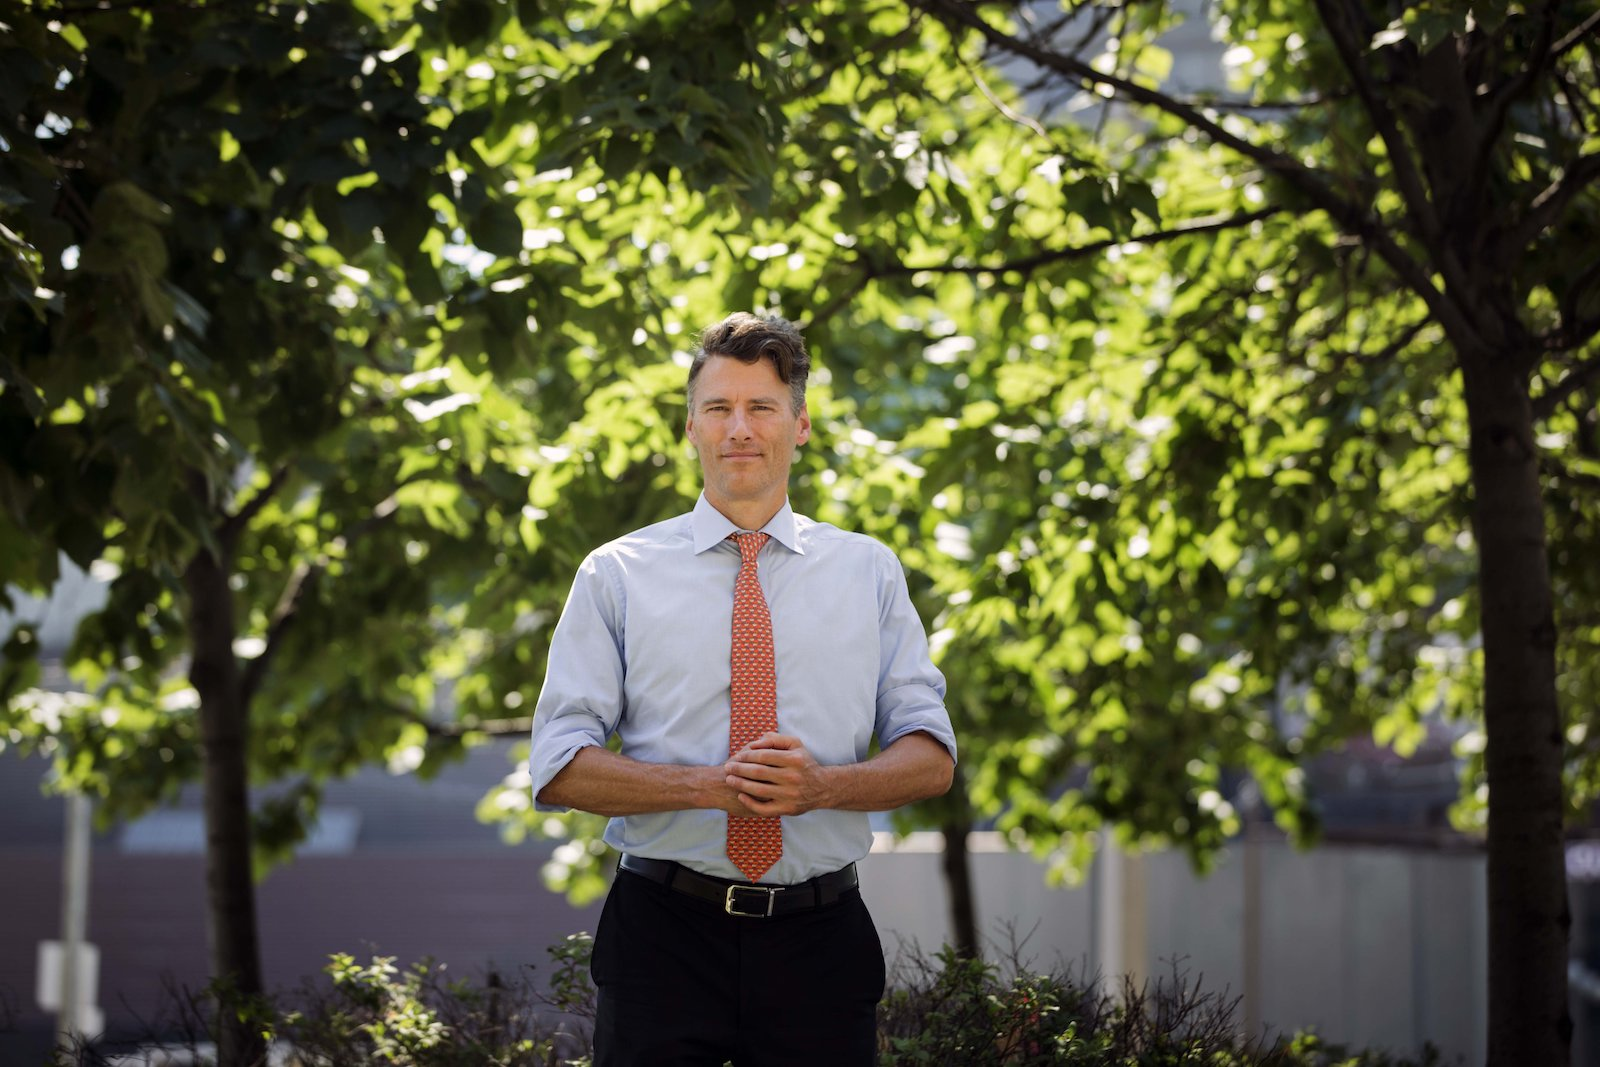 a man in a button-up shirt and a coral tie stands in a tree-filled area